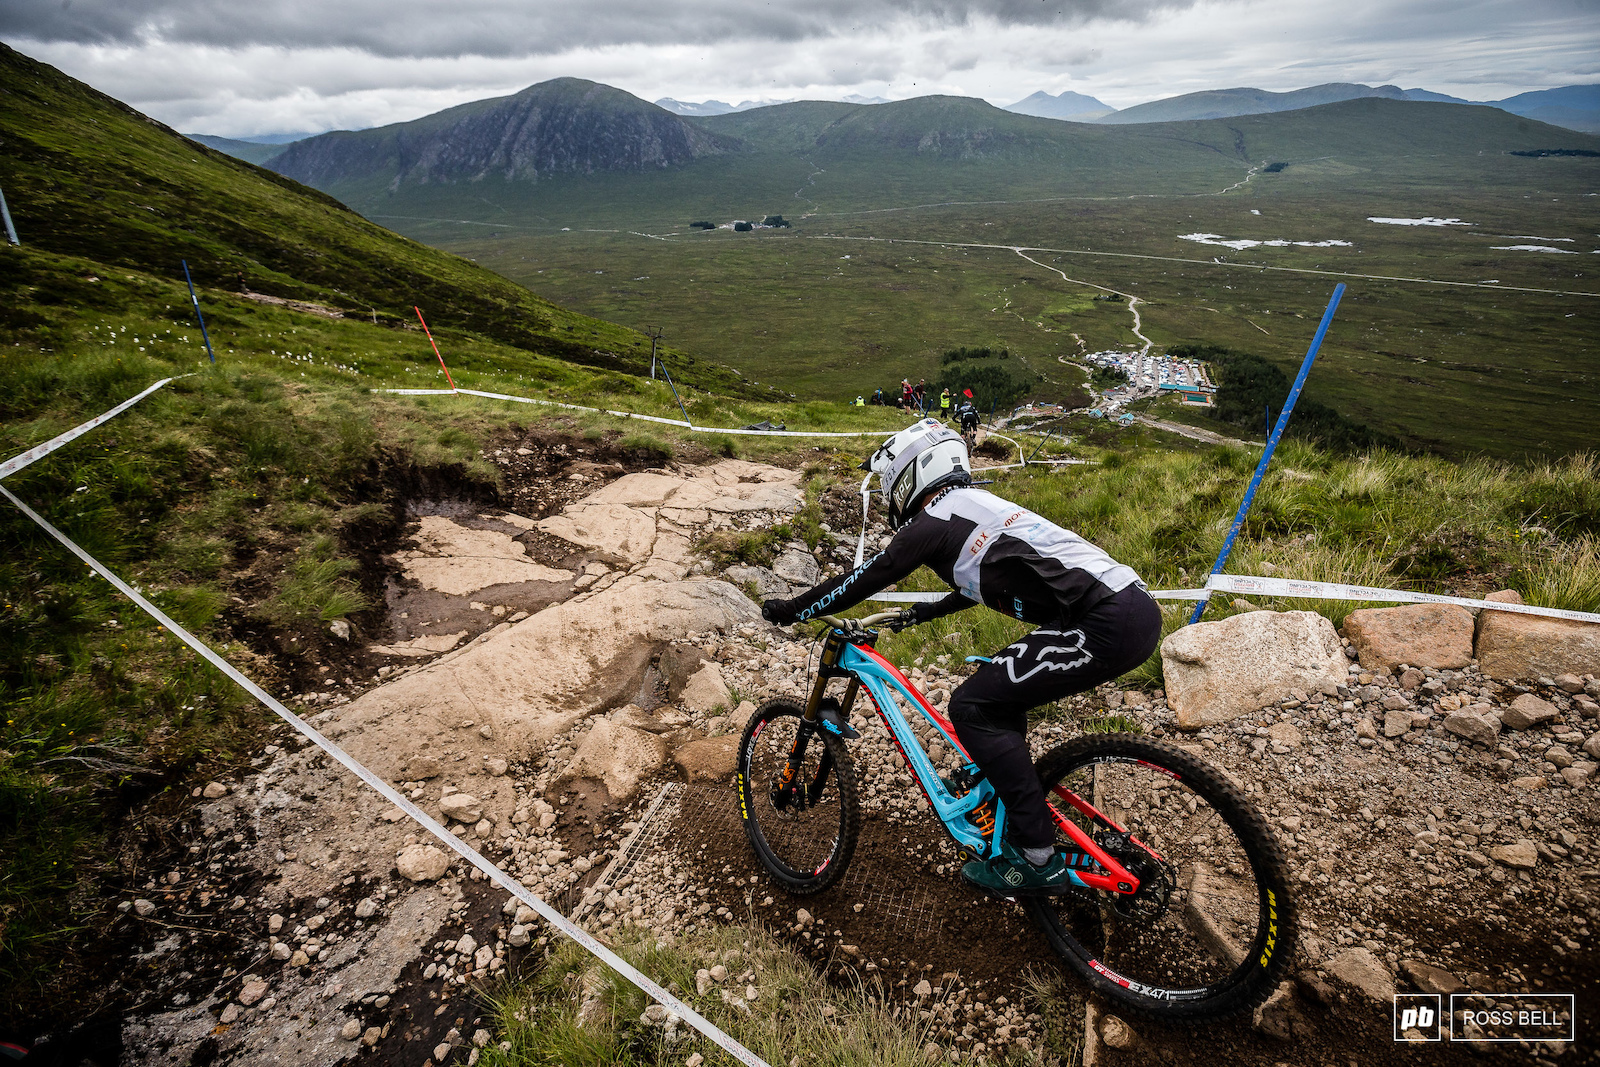 Fresh off the back of a red hot start to the WC season which sees him sat 2nd overall MS Mondraker s Laurie Greenland took the trip north to have a crack at taking his first elite national title.